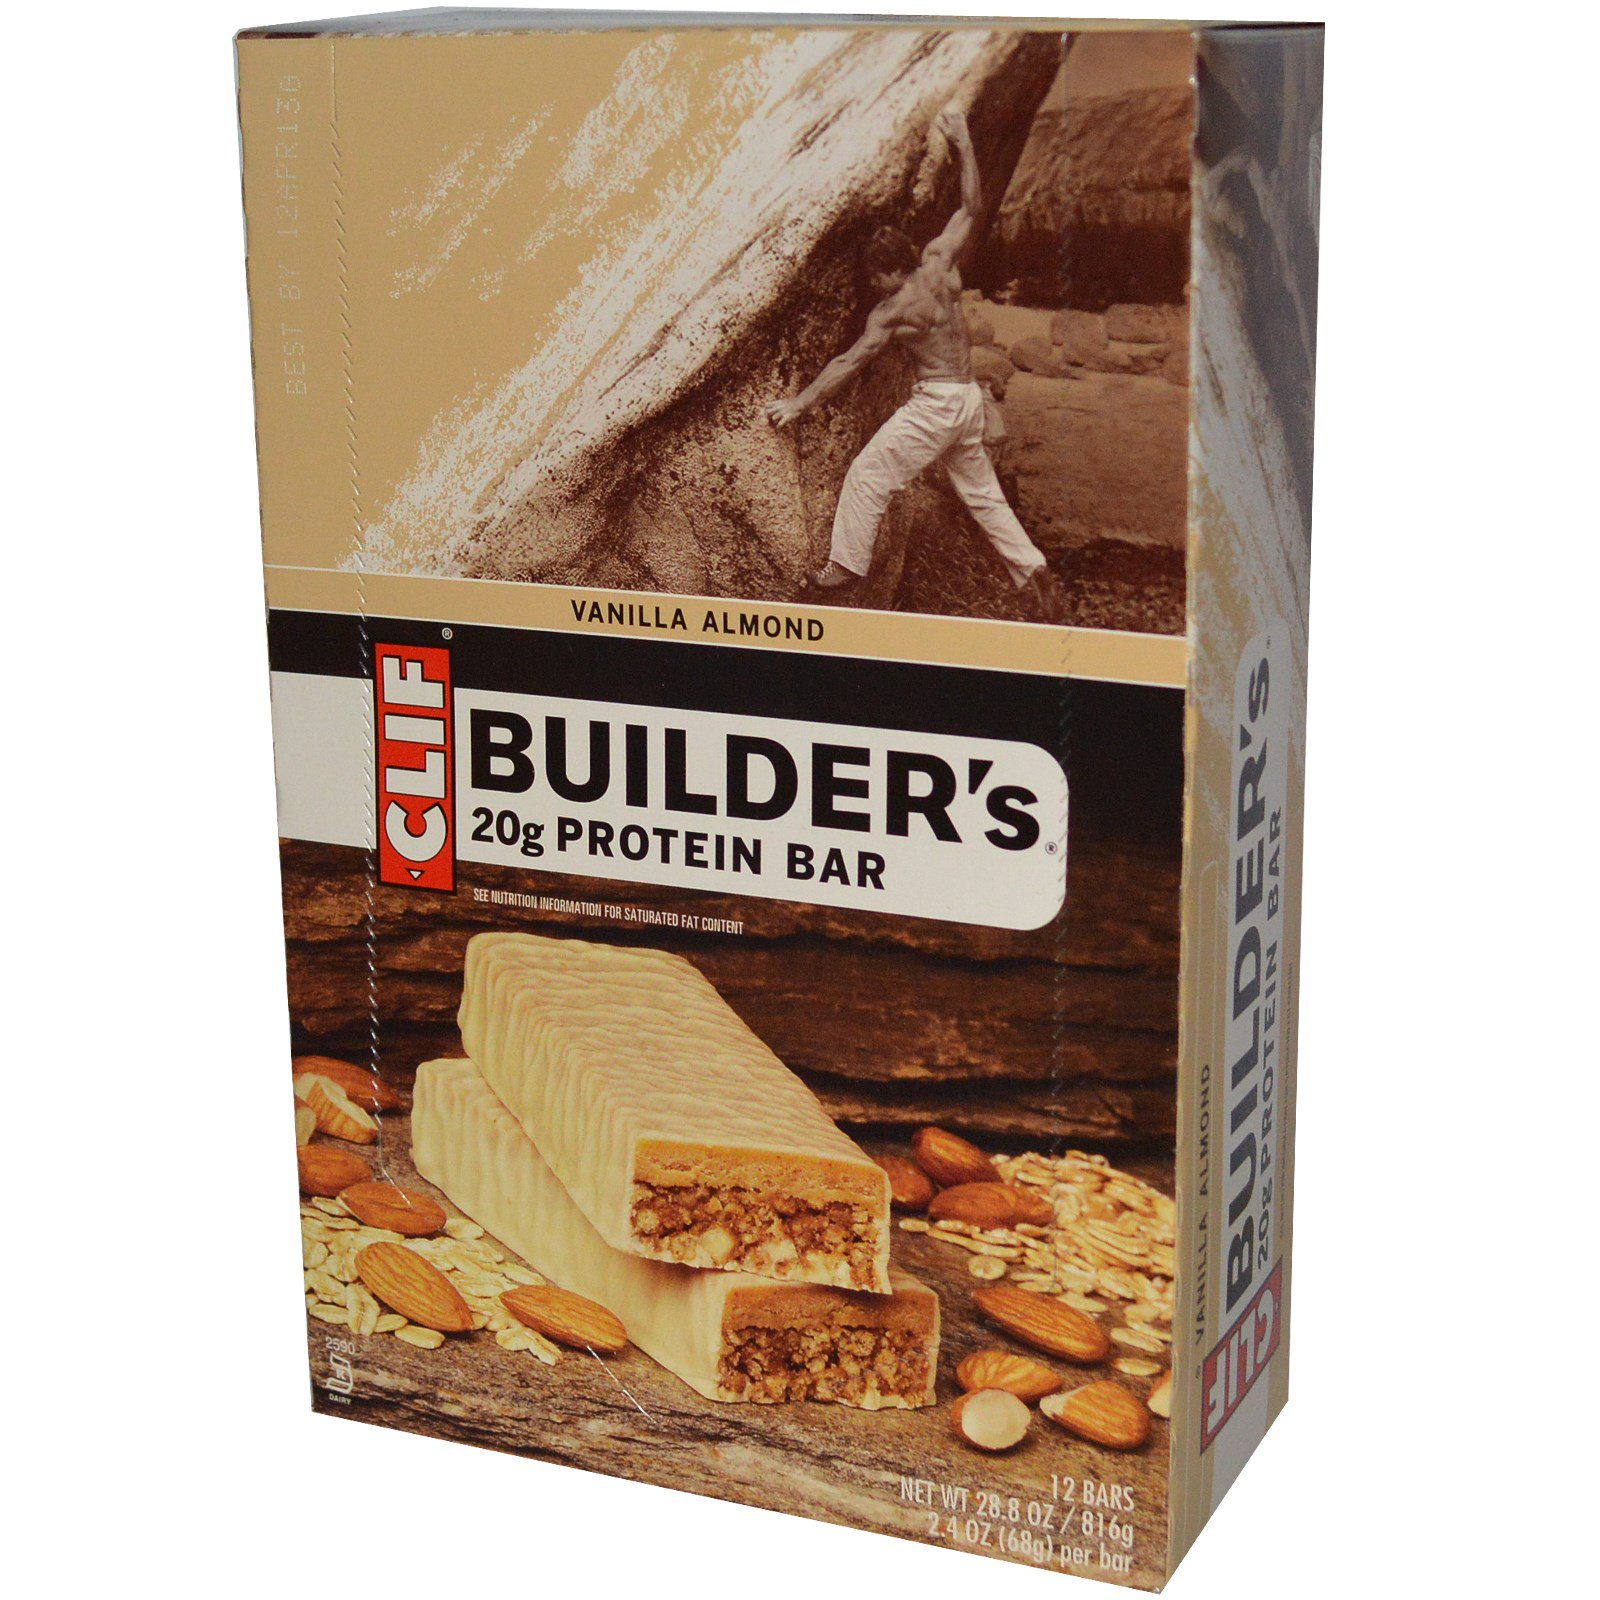 Clif Bar, Builder's Protein Bar, Vanilla Almond, 12 Bars, 2.4 oz (68 g) Per Bar